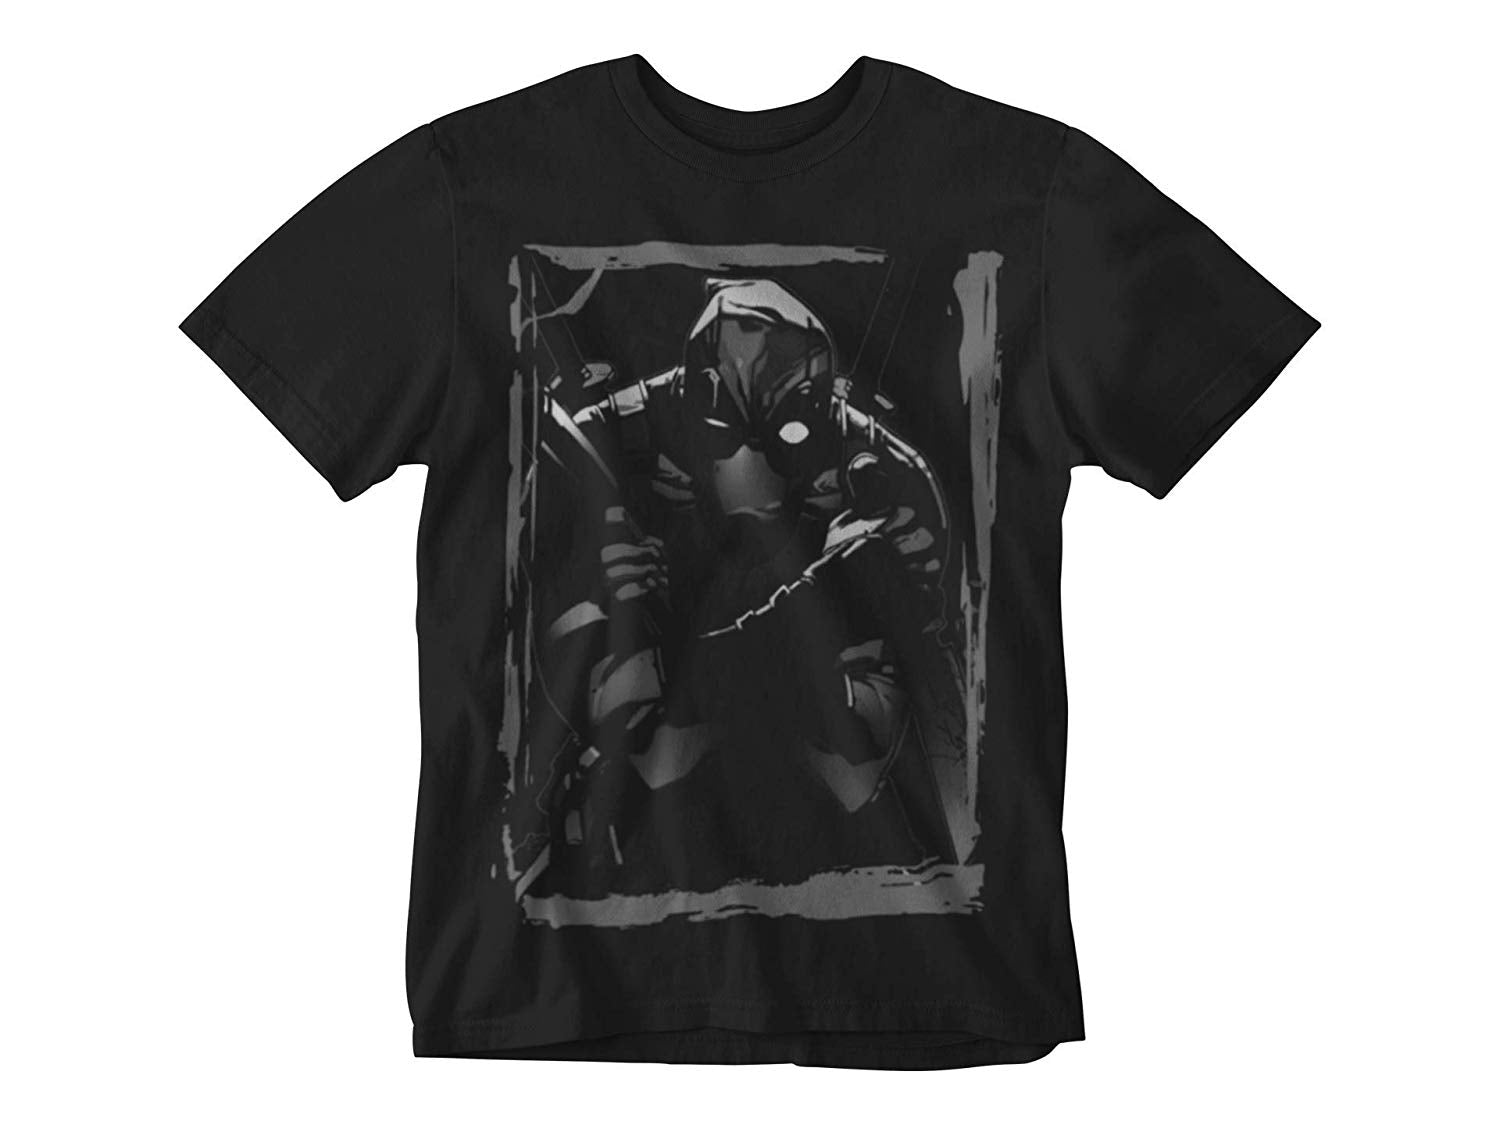 Marvel - Deadpool Mad Money HD Ink Men's Black